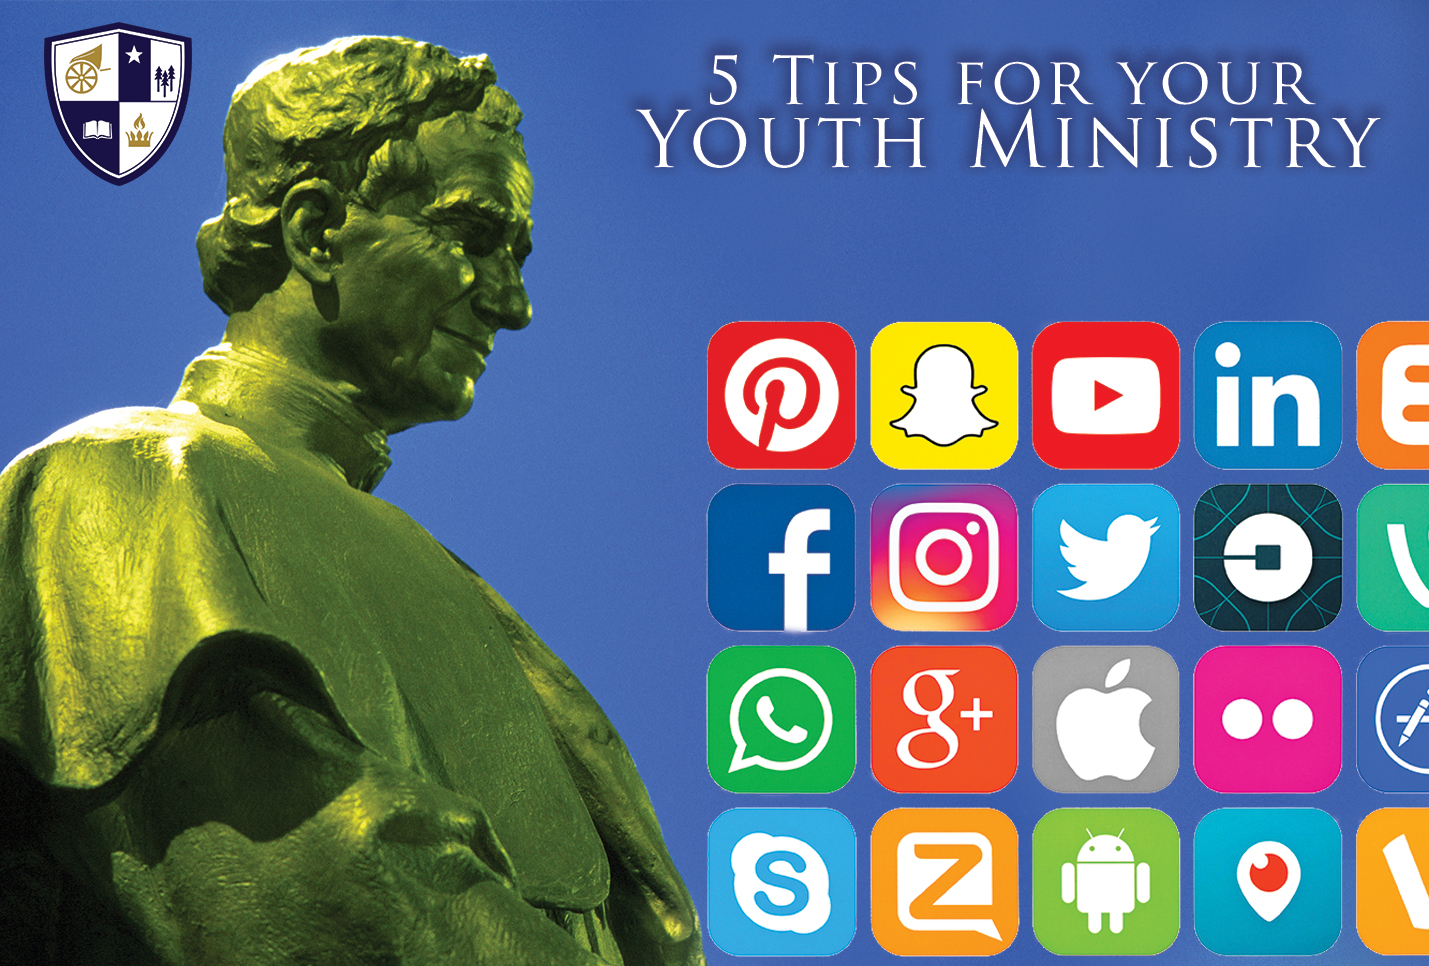 Five Tips from Fr. Braun for Youth Ministry